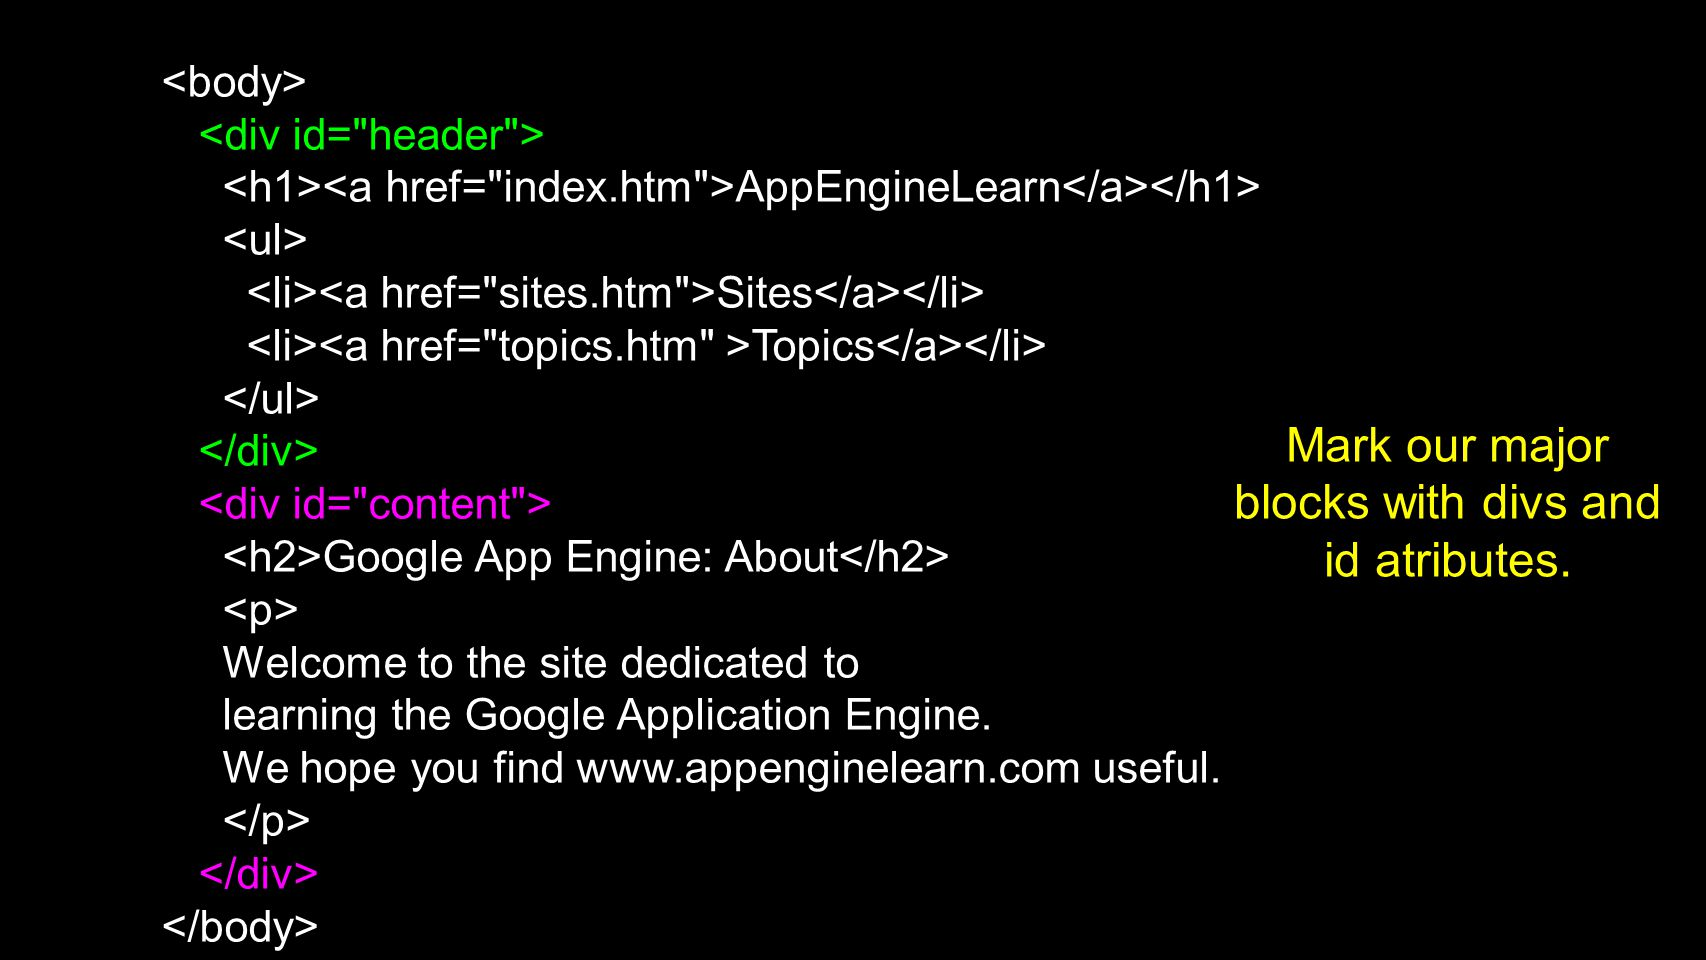 AppEngineLearn Sites Topics Google App Engine: About Welcome to the site dedicated to learning the Google Application Engine.